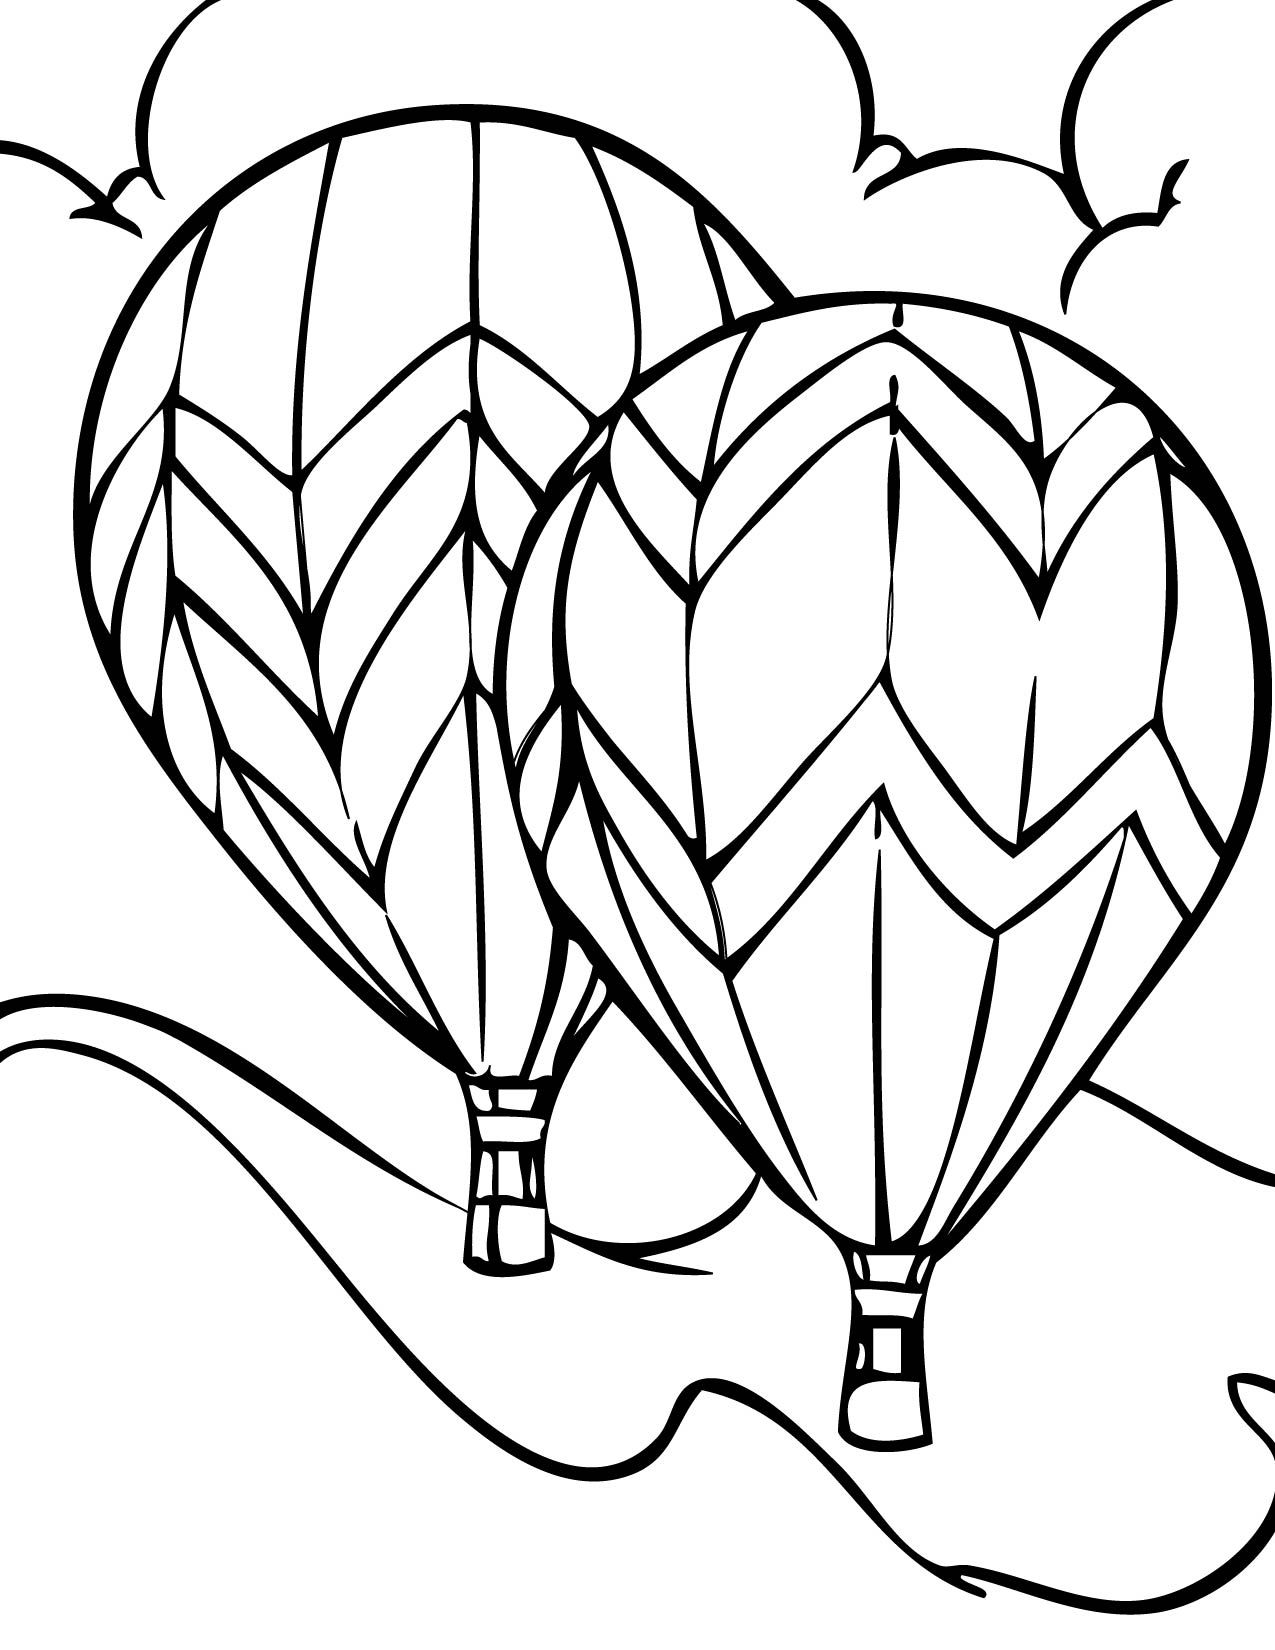 Free Printable Hot Air Balloon Coloring Pages For Kids | Hot air ...